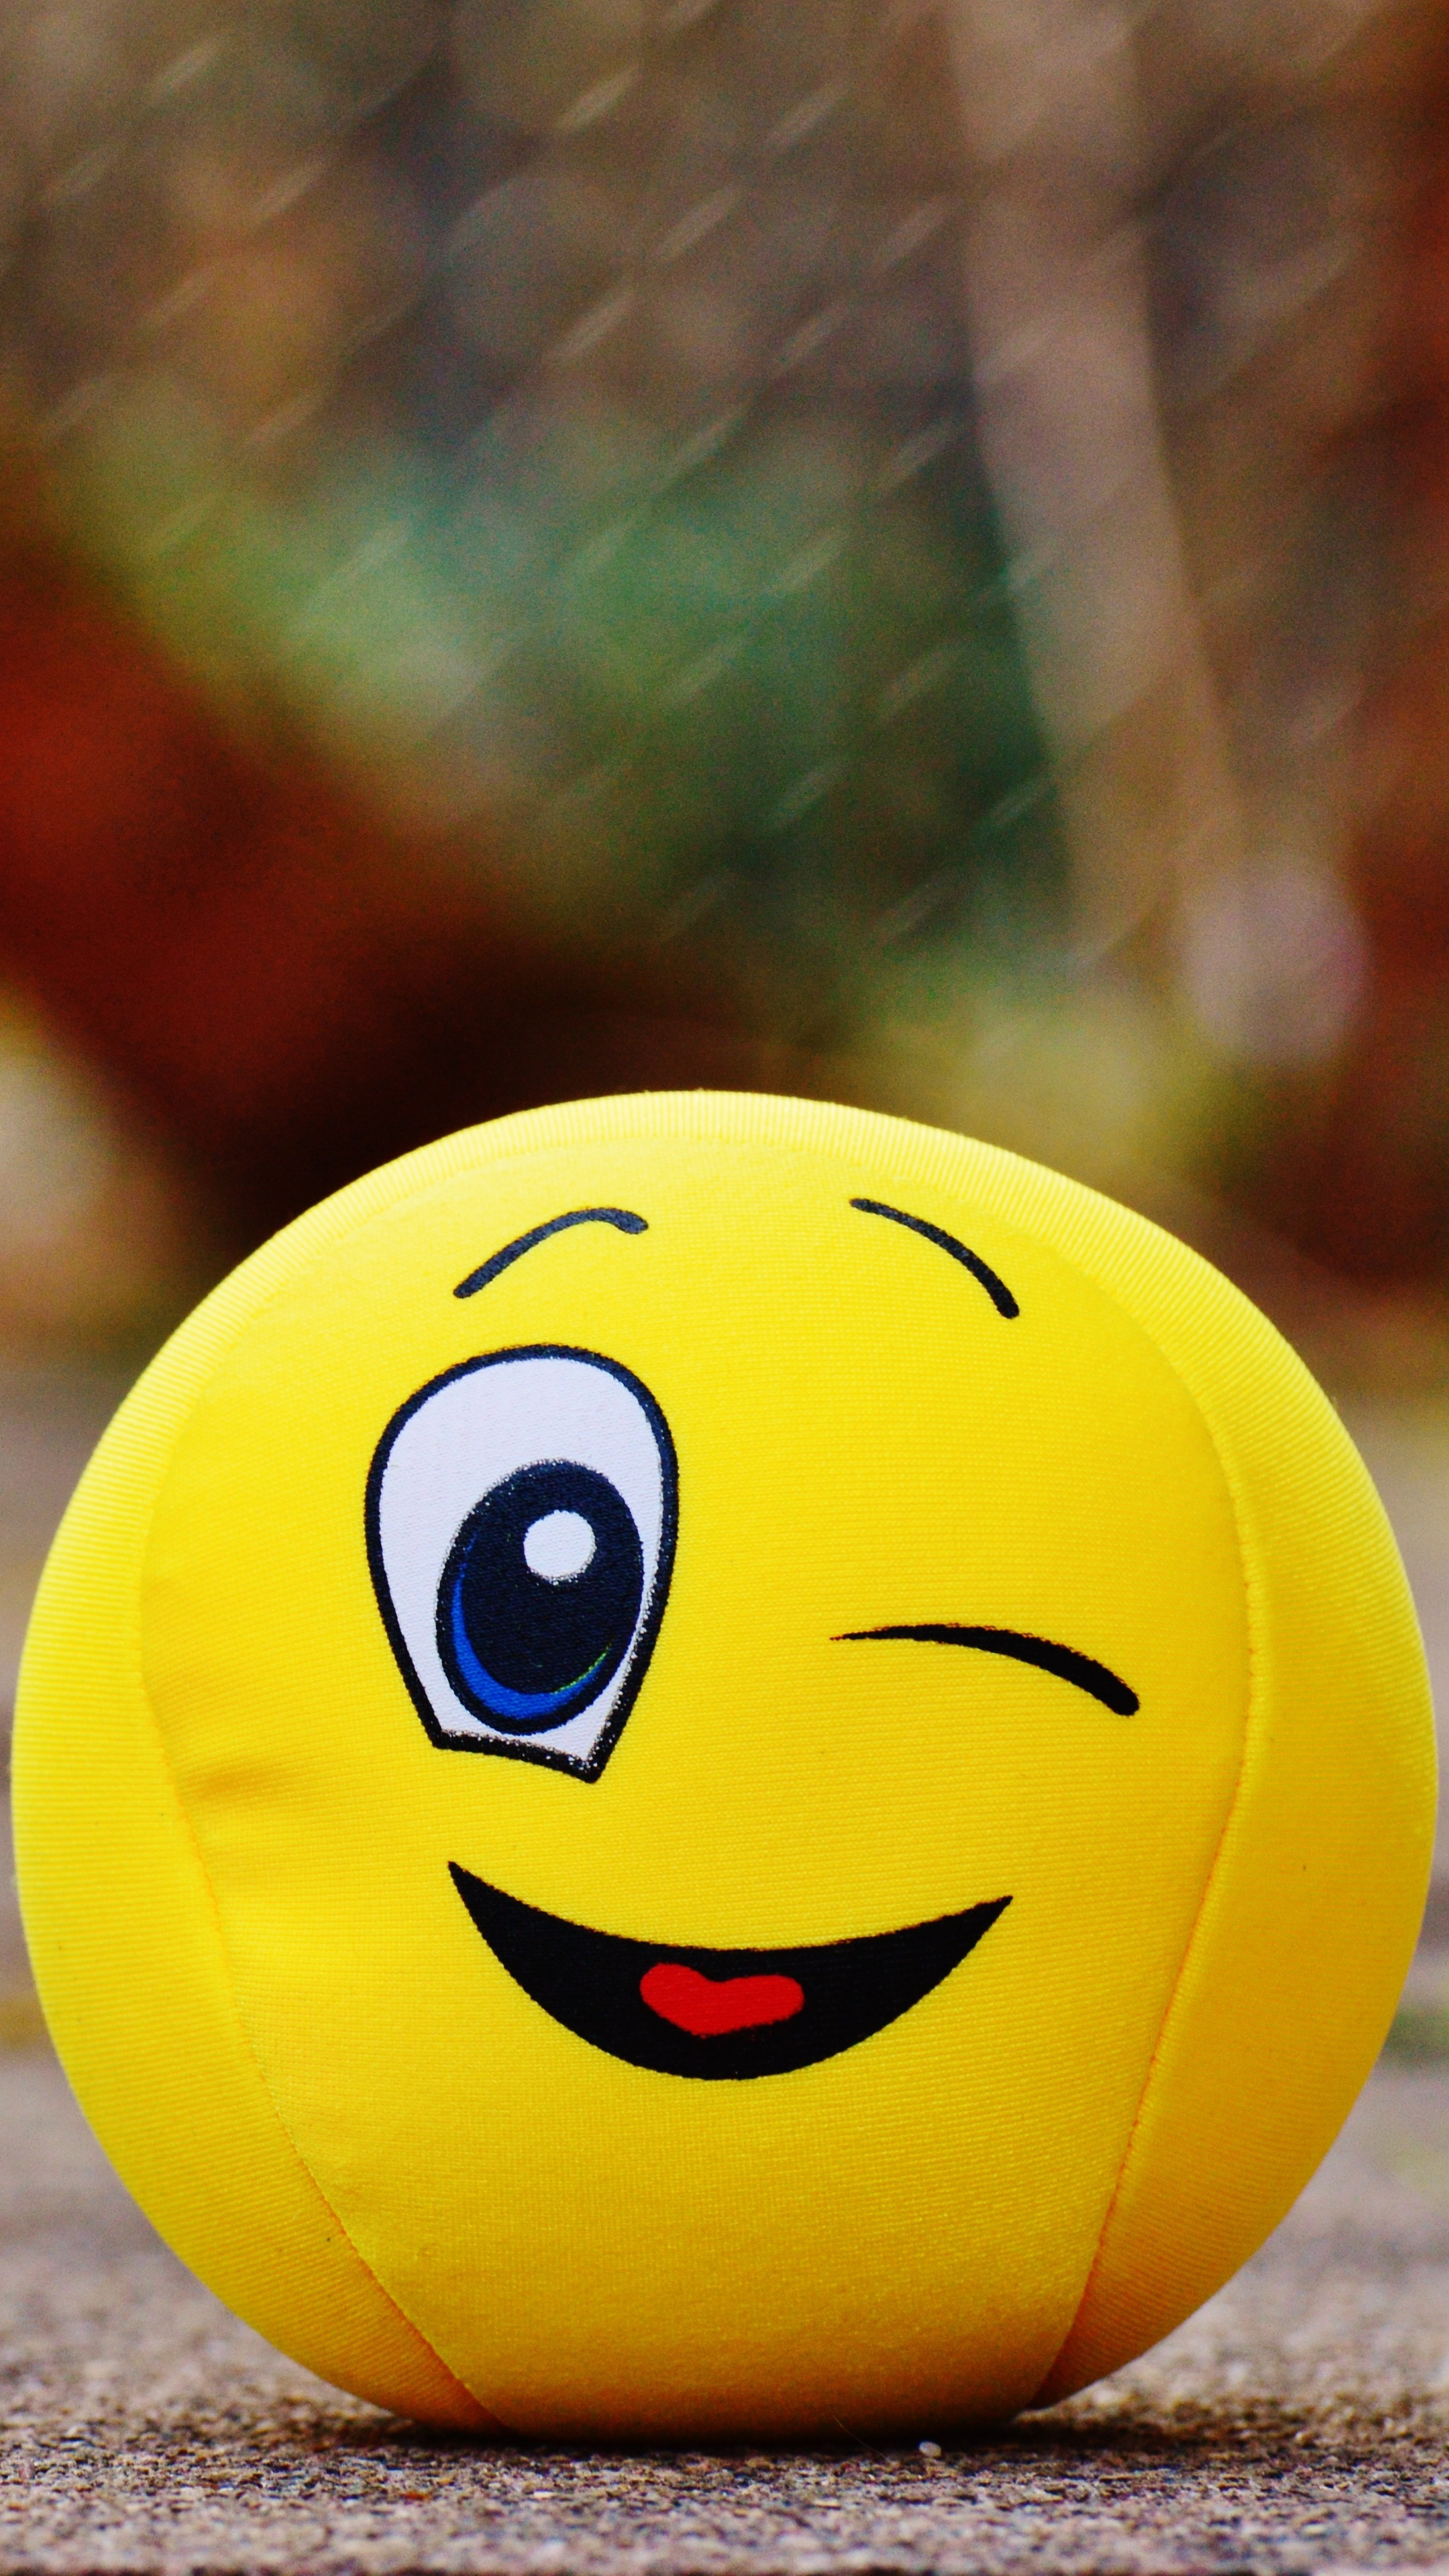 Free Download Download Wallpaper 2160x3840 Ball Smile Happy Toy Samsung 2160x3840 For Your Desktop Mobile Tablet Explore 28 Wallpaper Hd Smiley Ball Wallpaper Hd Smiley Ball Smiley Ball Wallpaper